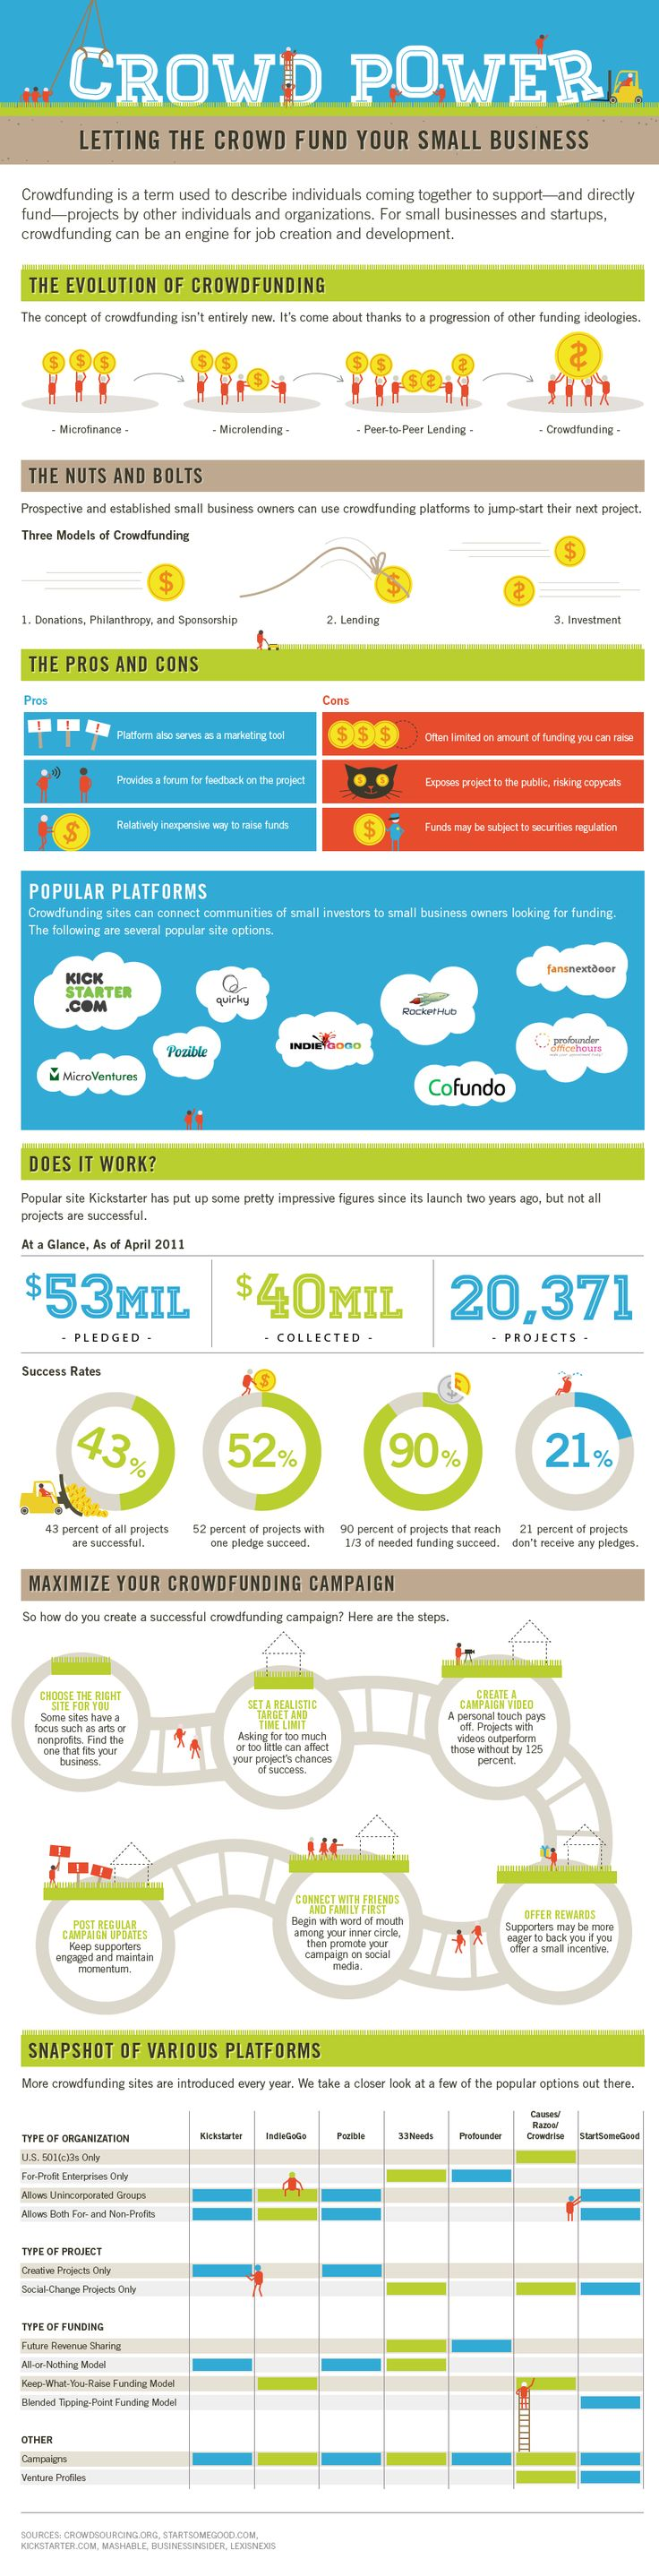 Crowd Power. What is Crowdfunding? Letting the crowd fund your small business. #infographic